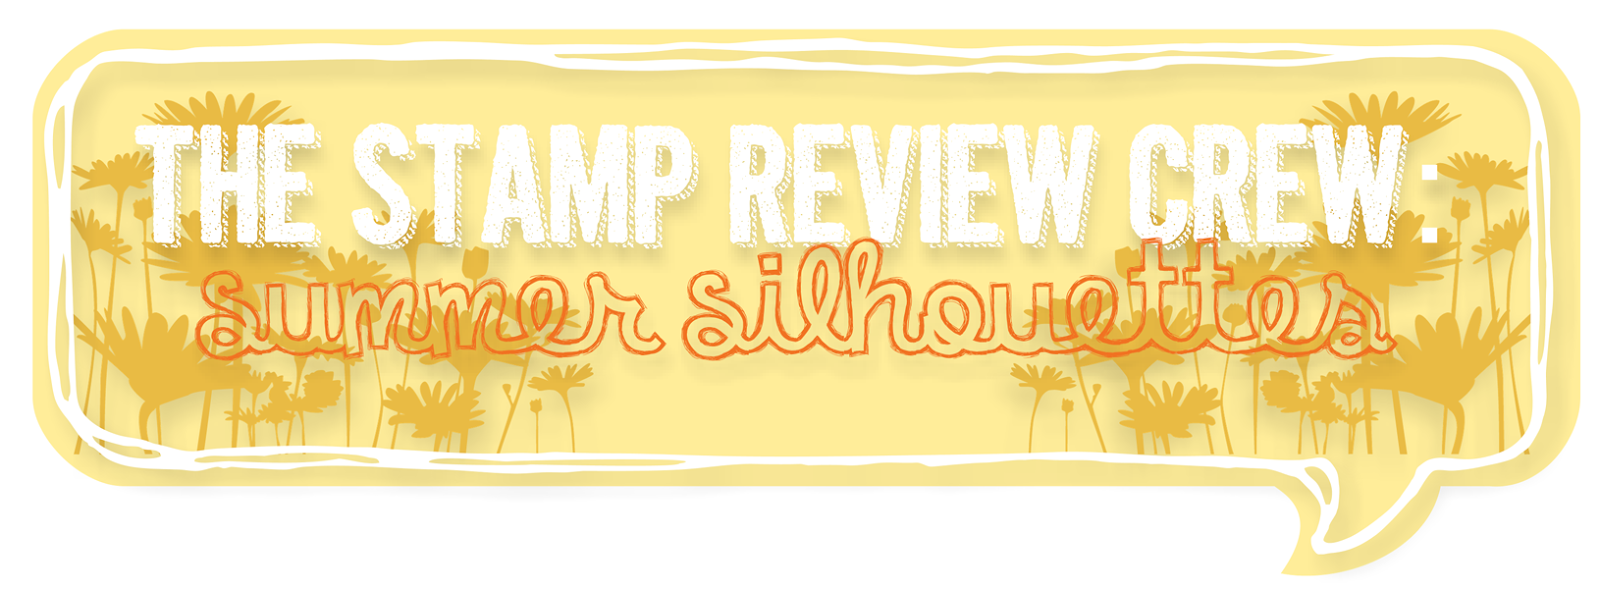 http://stampreviewcrew.blogspot.com/2014/07/stamp-review-crew-summer-silhouettes.html